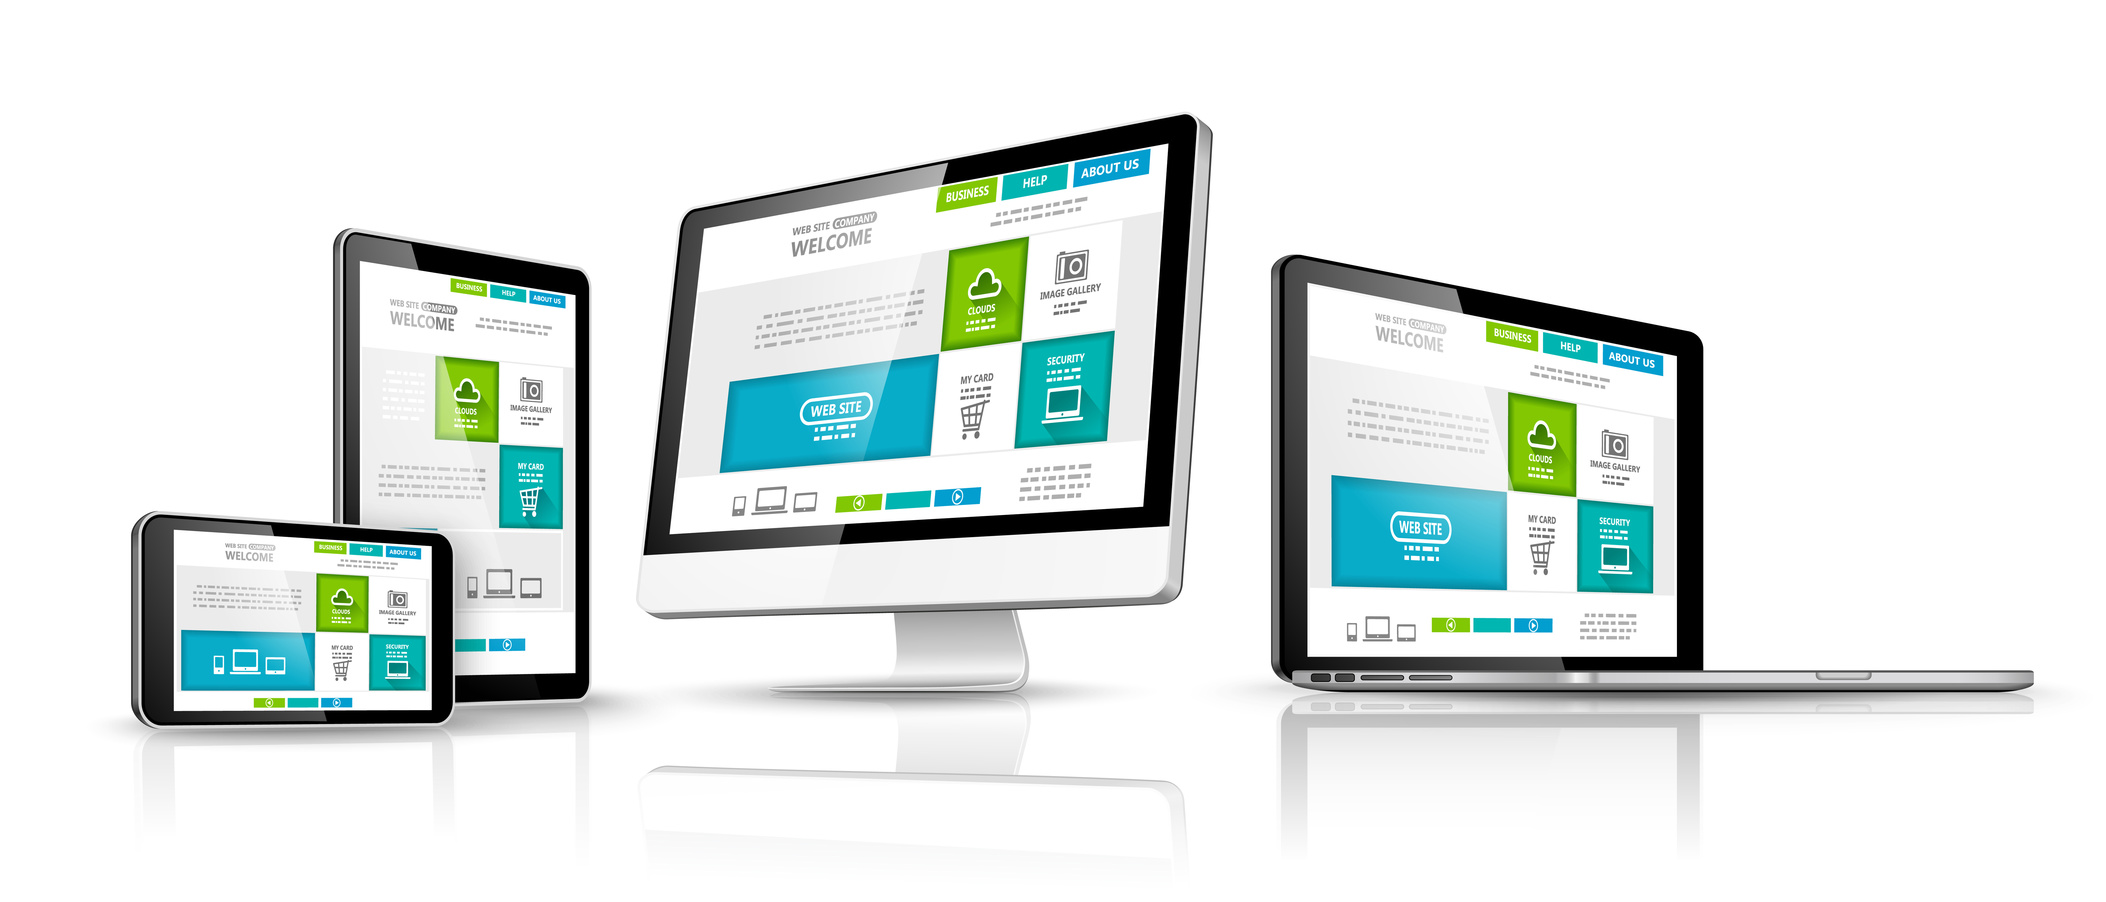 WCI website design services